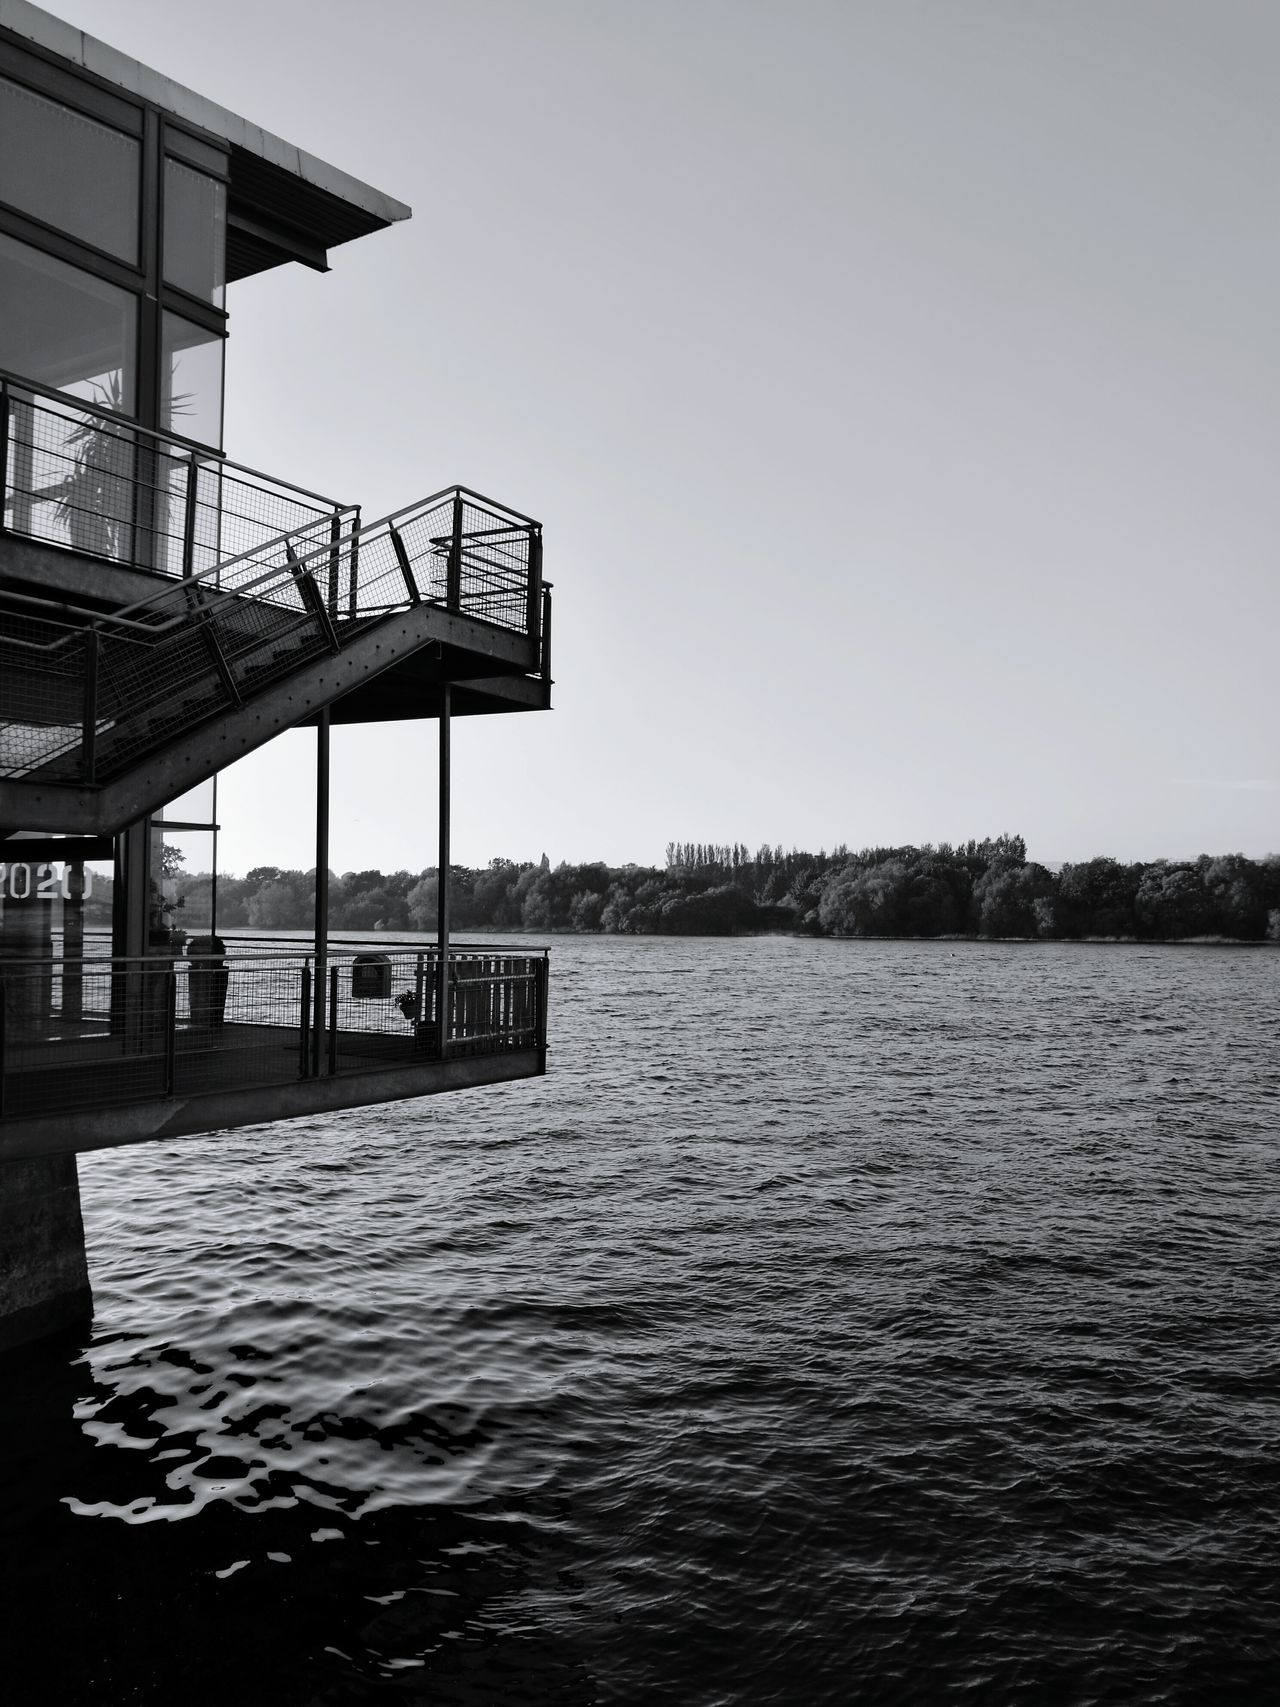 Riverside Water Sky City Nature Outdoors Bridge - Man Made Structure Photography HuaweiP9 Huaweiphotography Explore Travel Travel Photography Blackandwhite Structures Built Structure Ireland Architecture Limerick City Limerick Ireland Home Shannon River Discoverireland Limerick2030 Proud Balcony